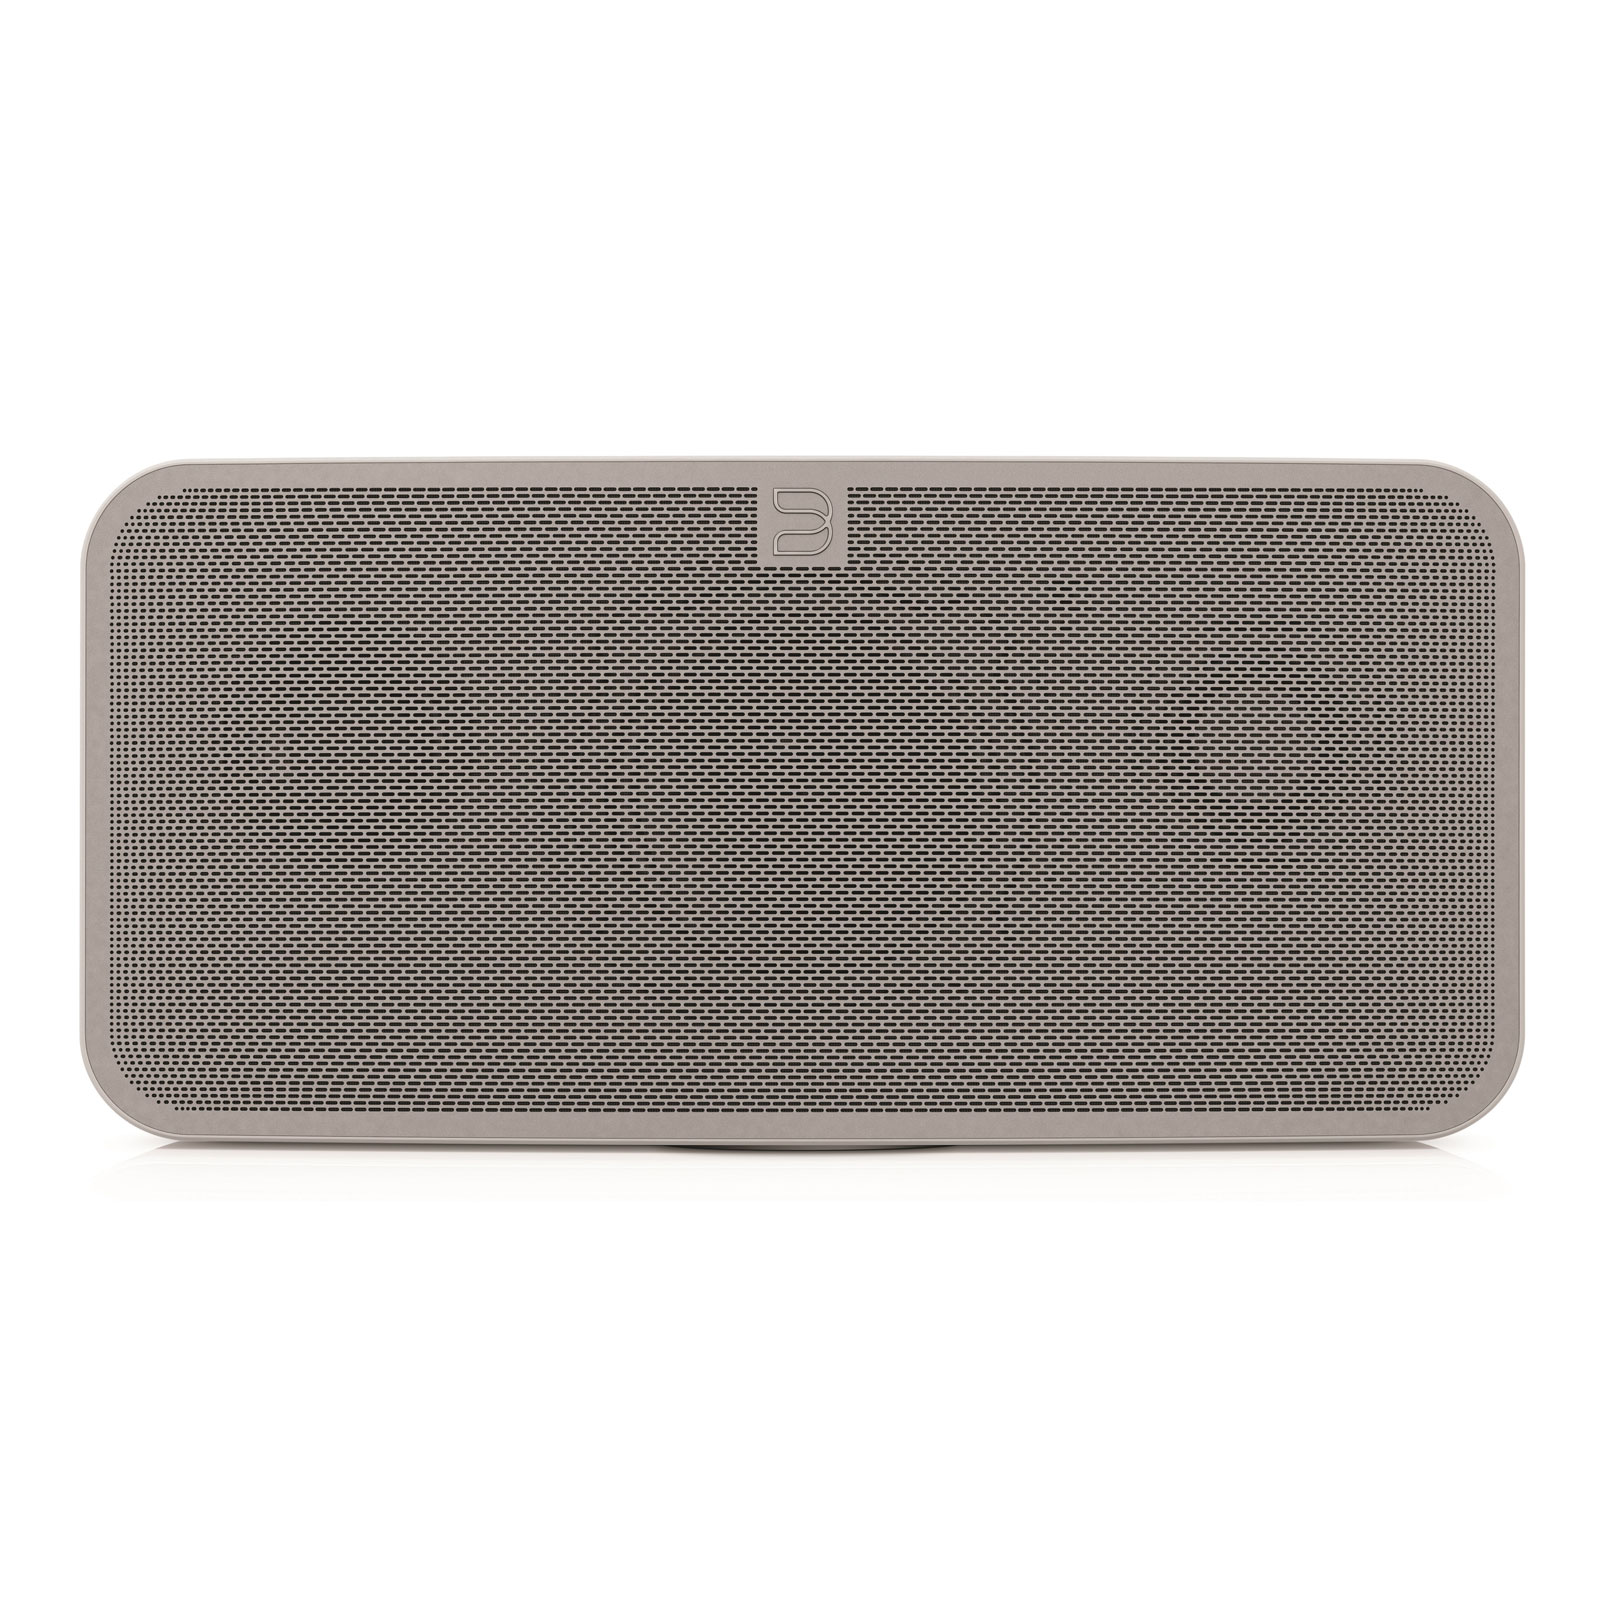 Dock & Enceinte Bluetooth Bluesound Pulse 2 Blanc Système audio multiroom avec Wi-Fi, Bluetooth pour Streaming audio et Web radio compatible Hi-Res Audio